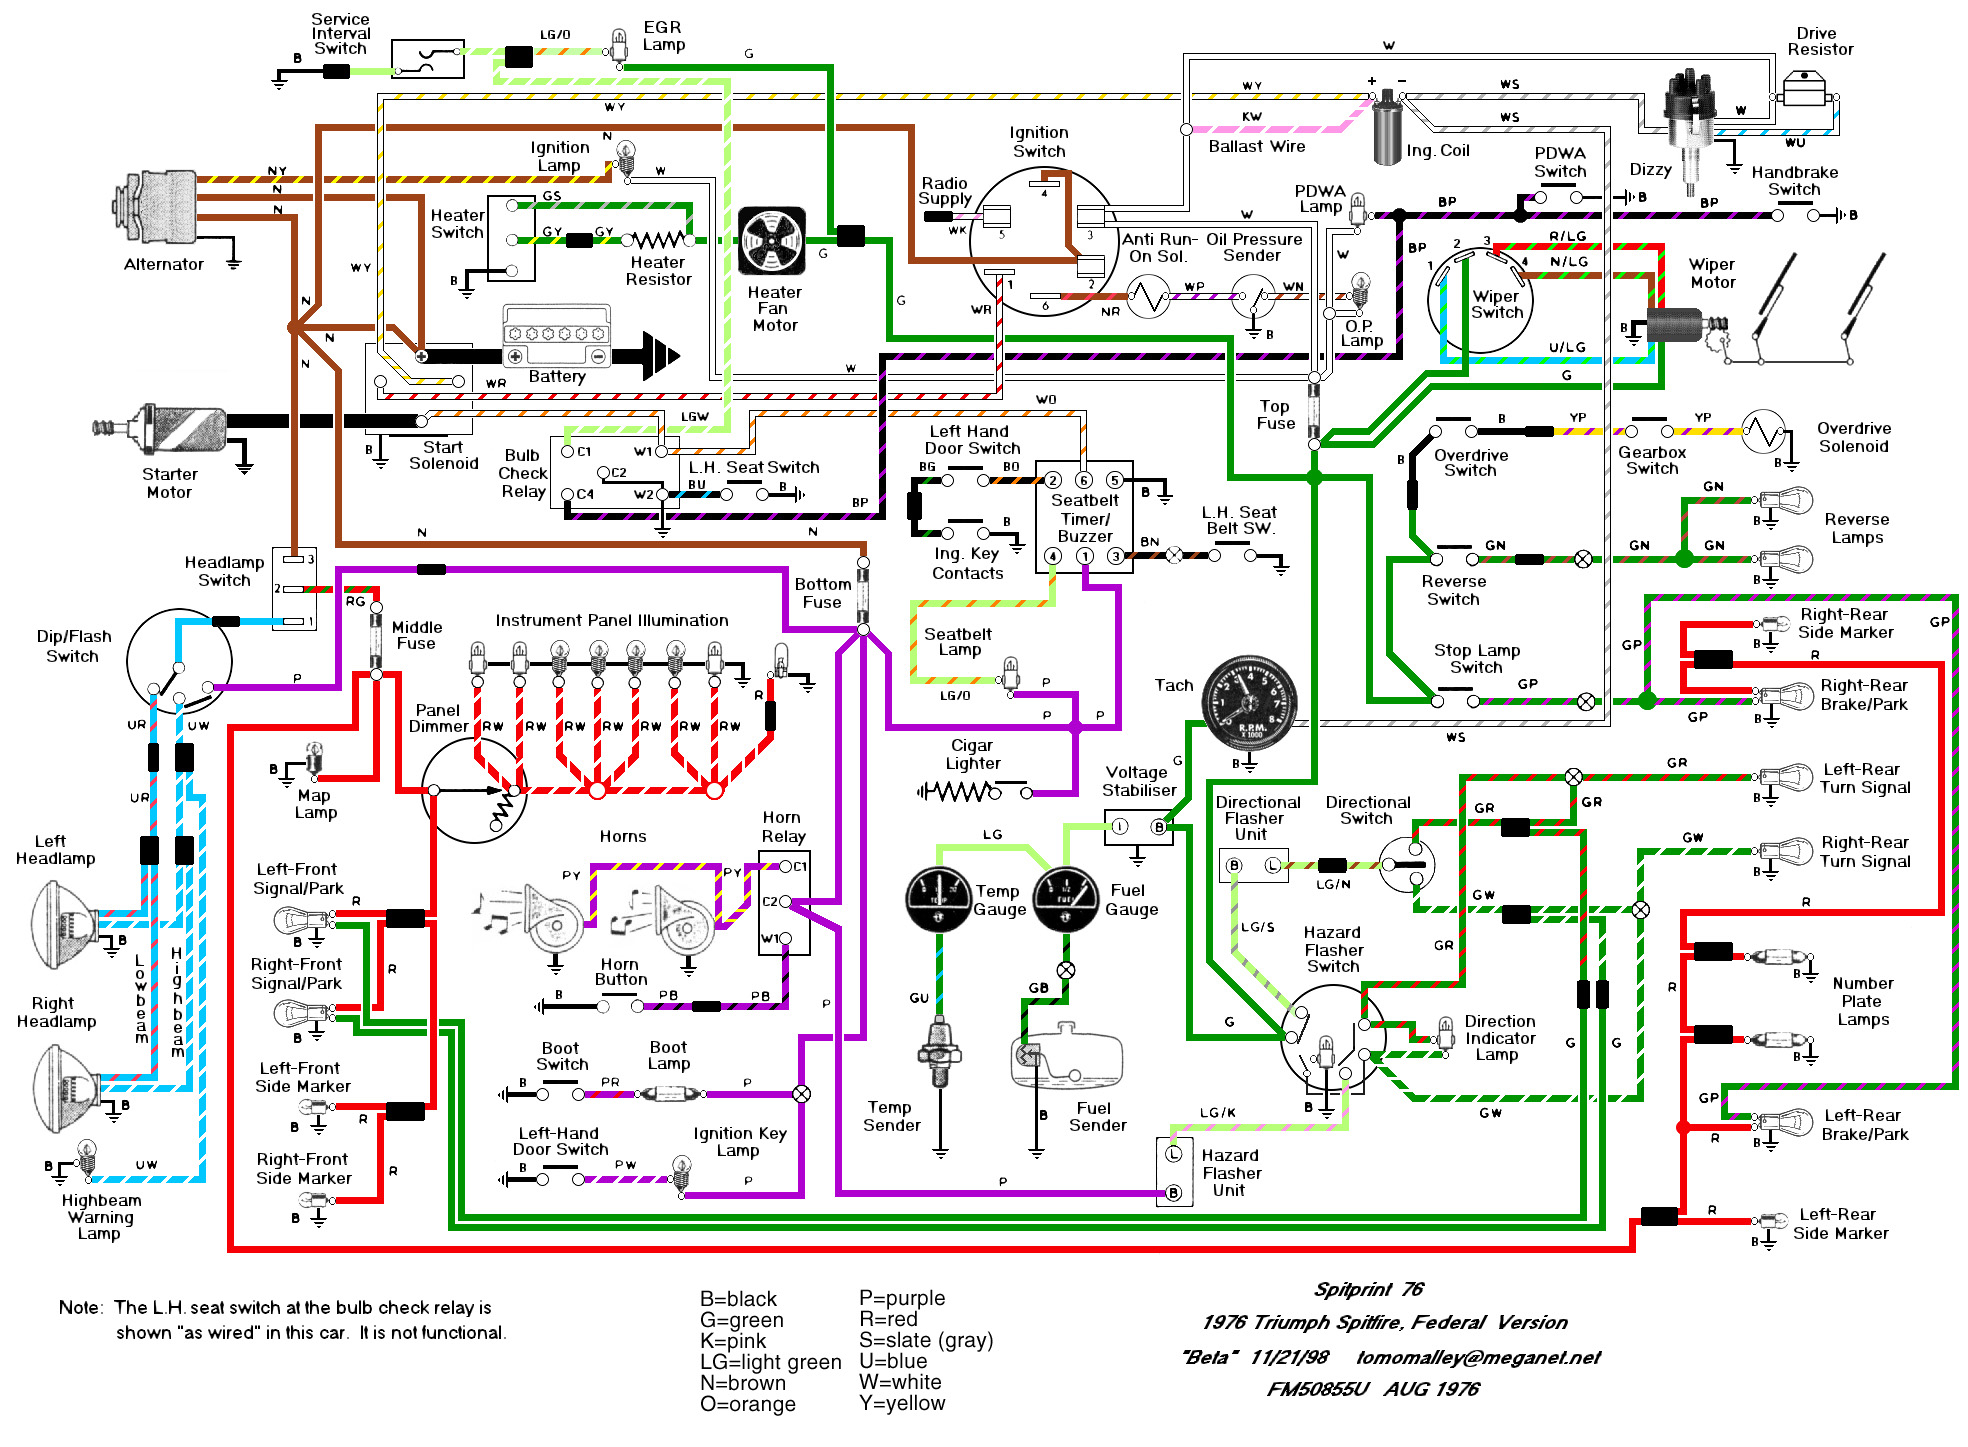 wiring diagram .